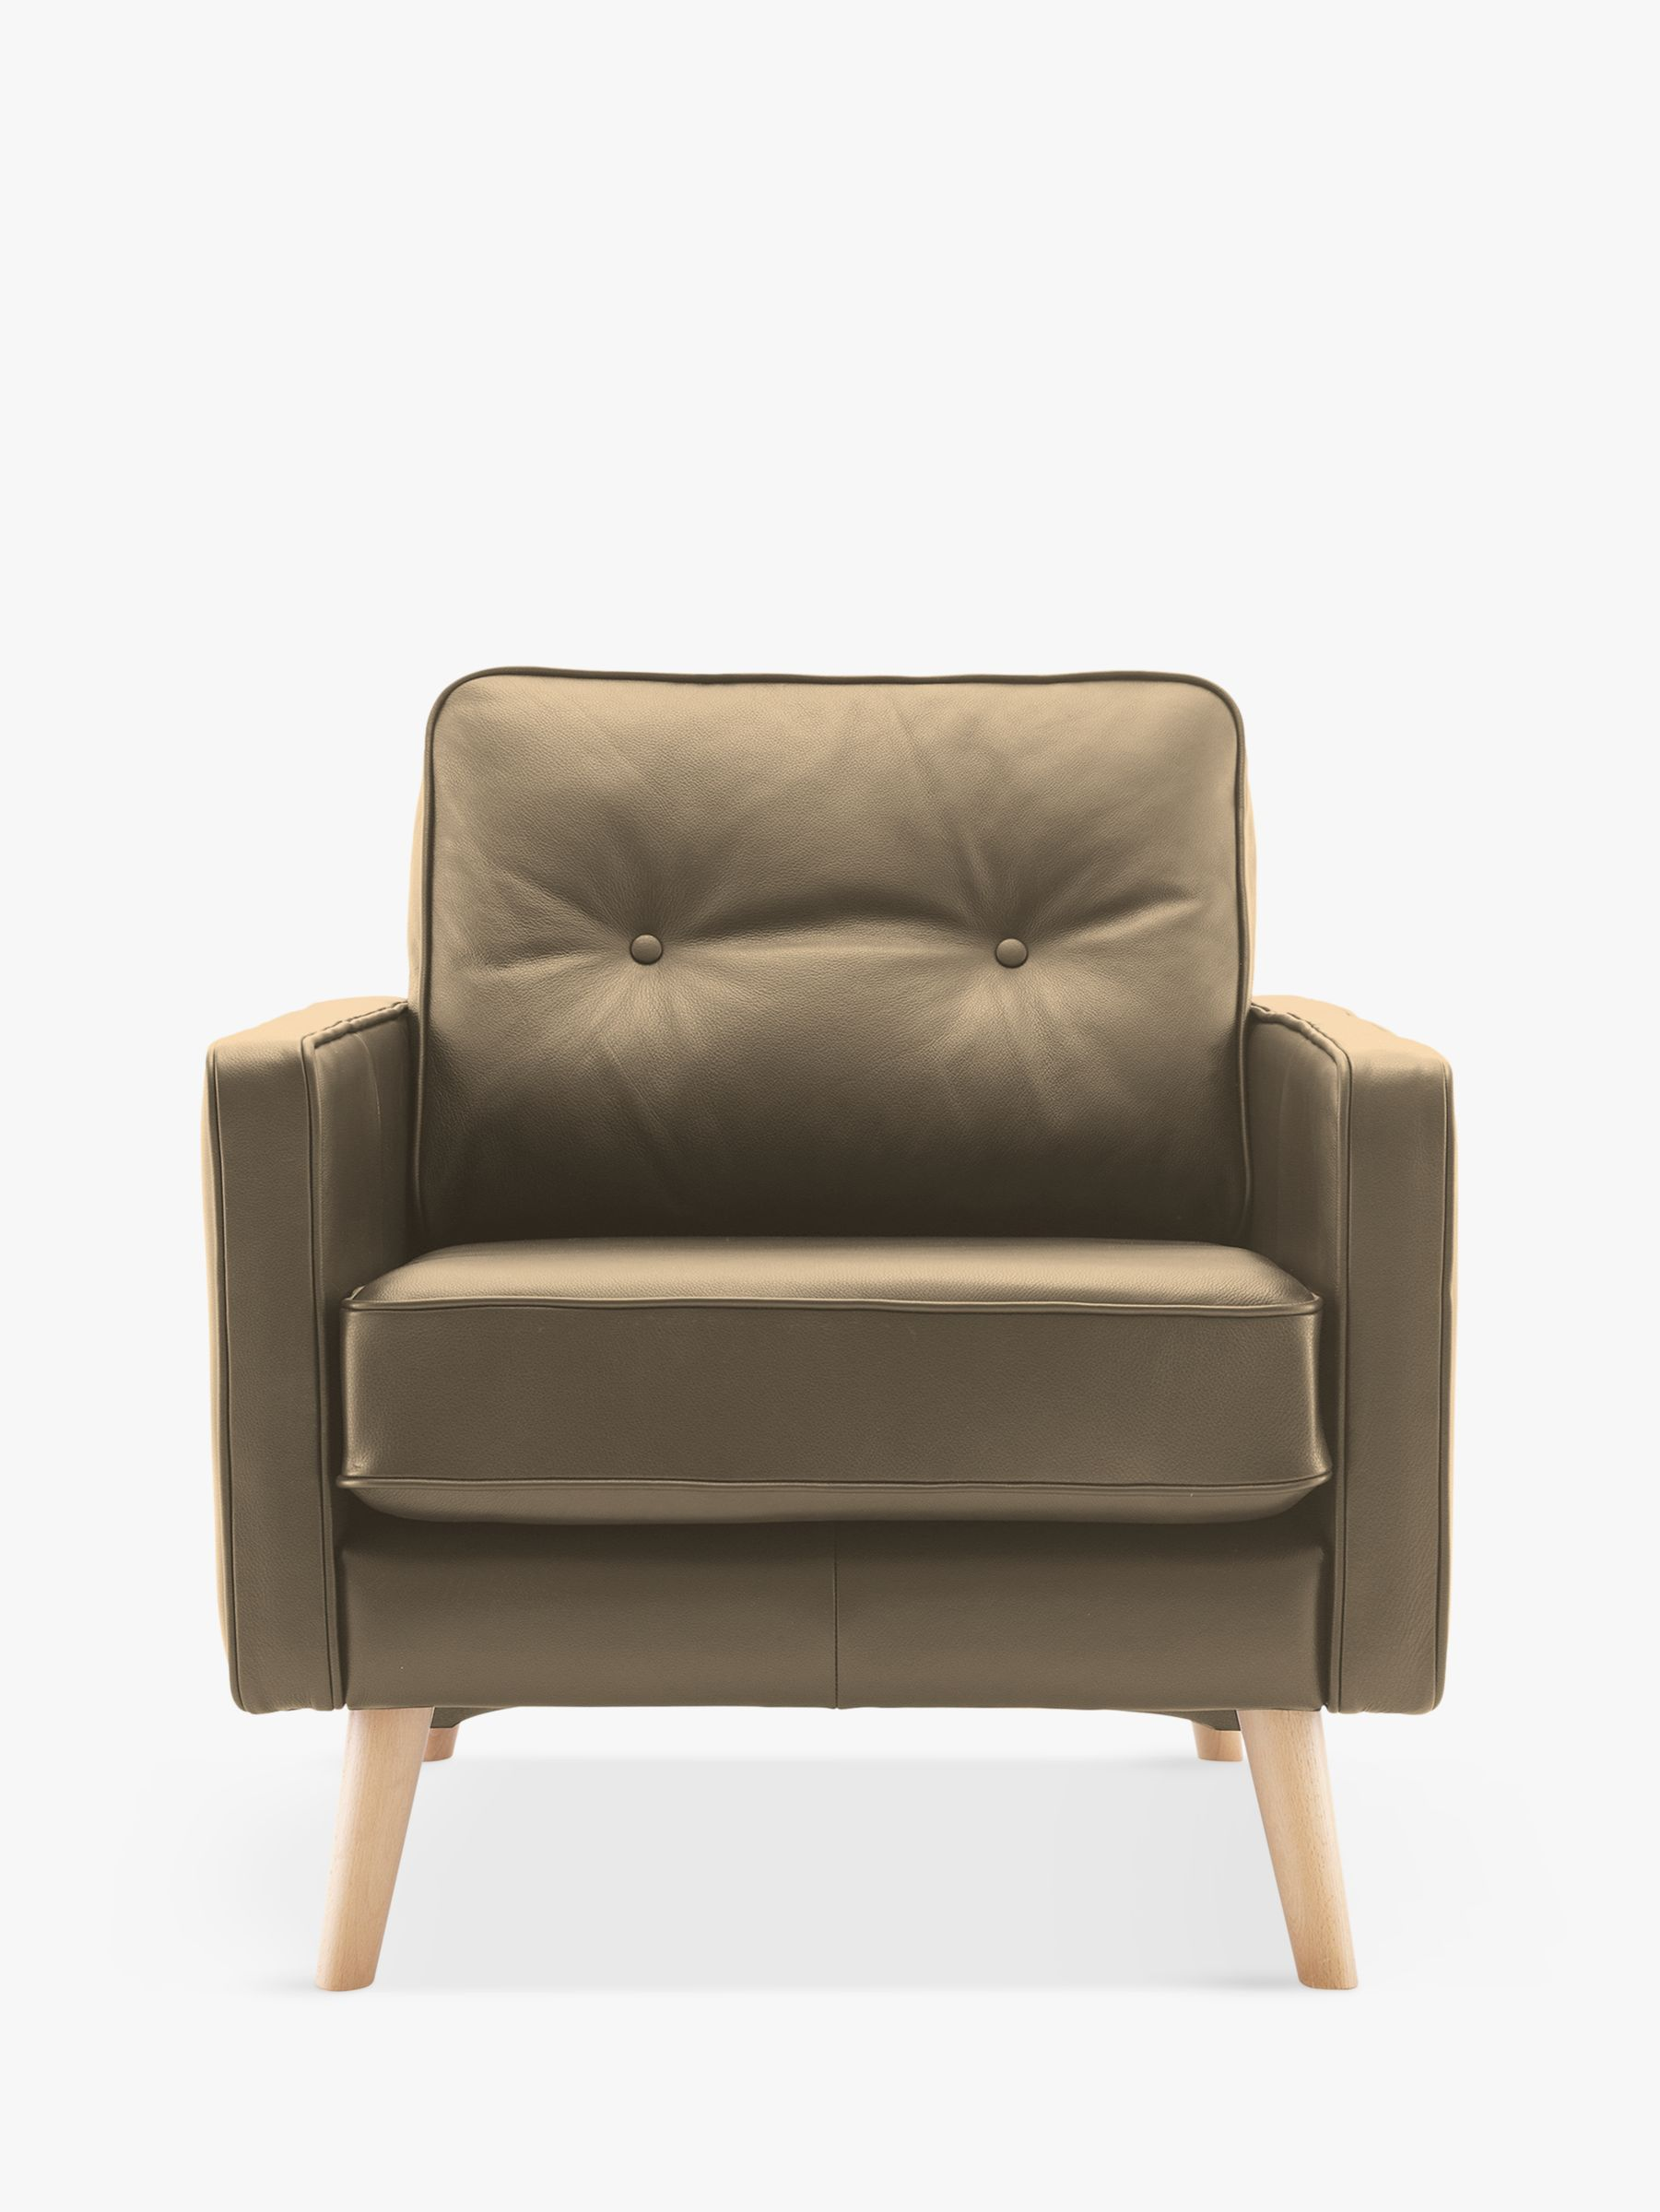 G Plan Vintage G Plan Vintage The Sixty Five Leather Armchair